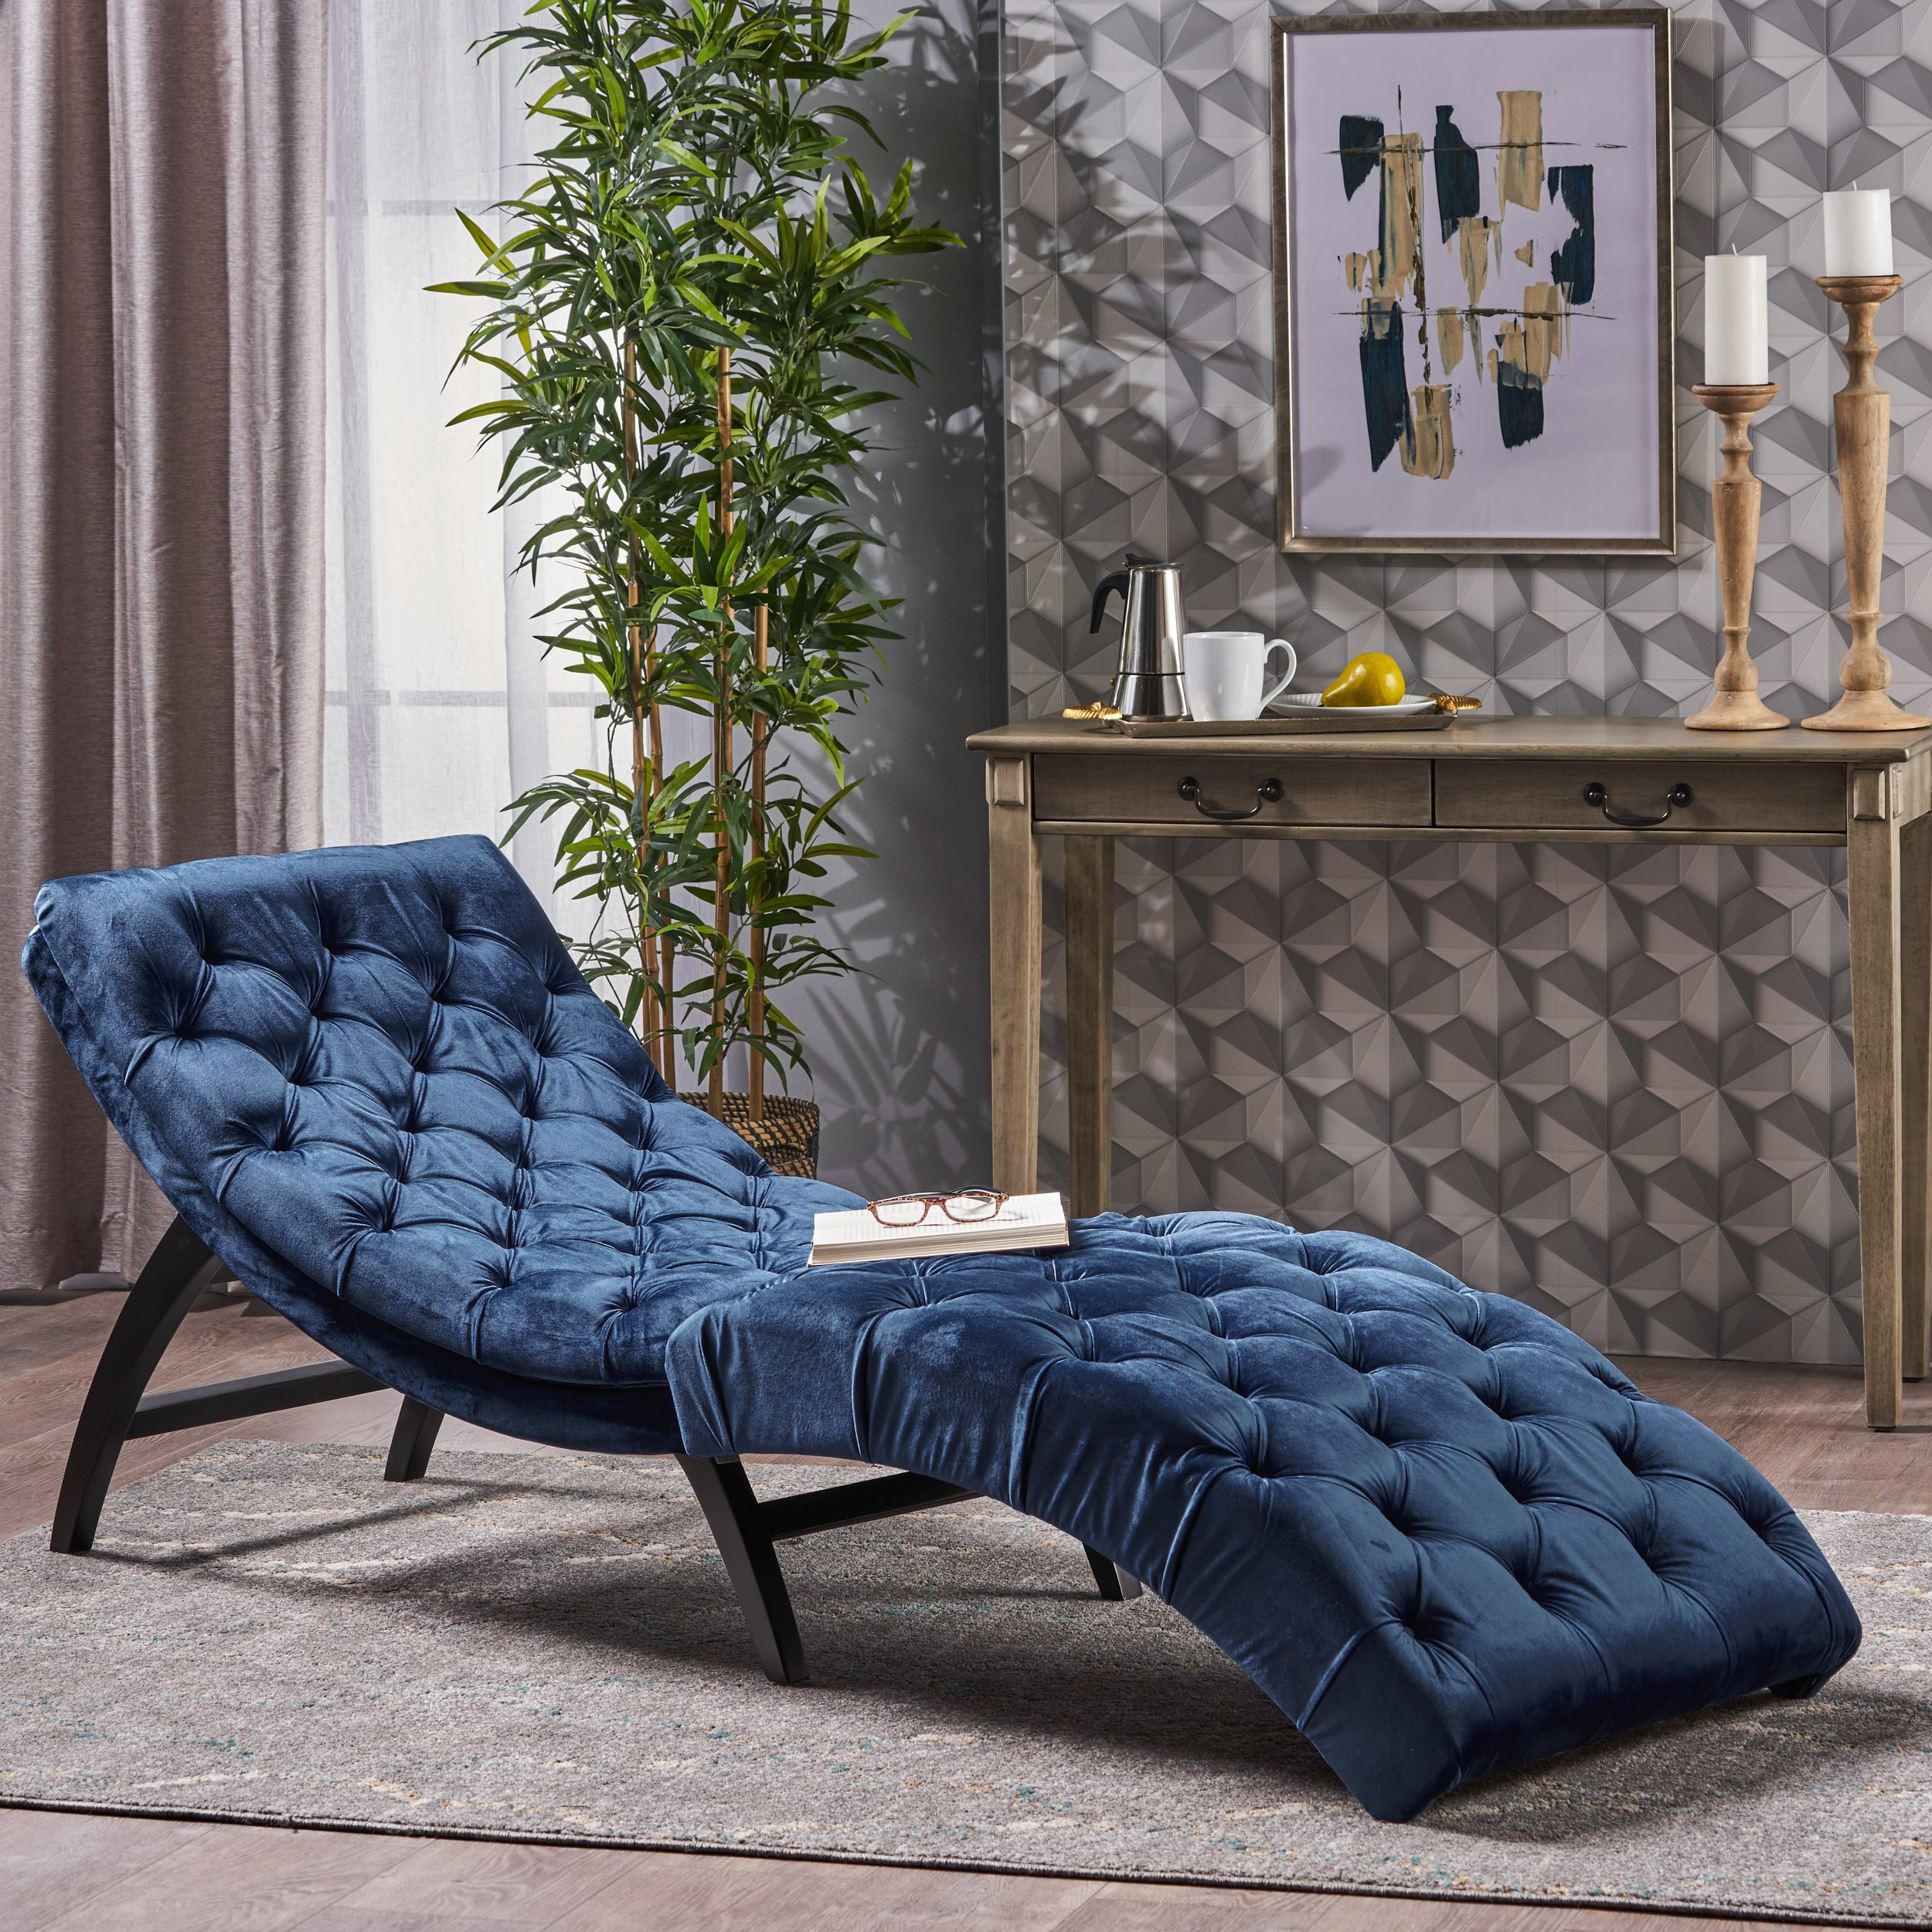 Details about Modern Chaise Lounge Chair Sofa Curved Lounger Bedroom Cobalt  Velvet Tufted NEW